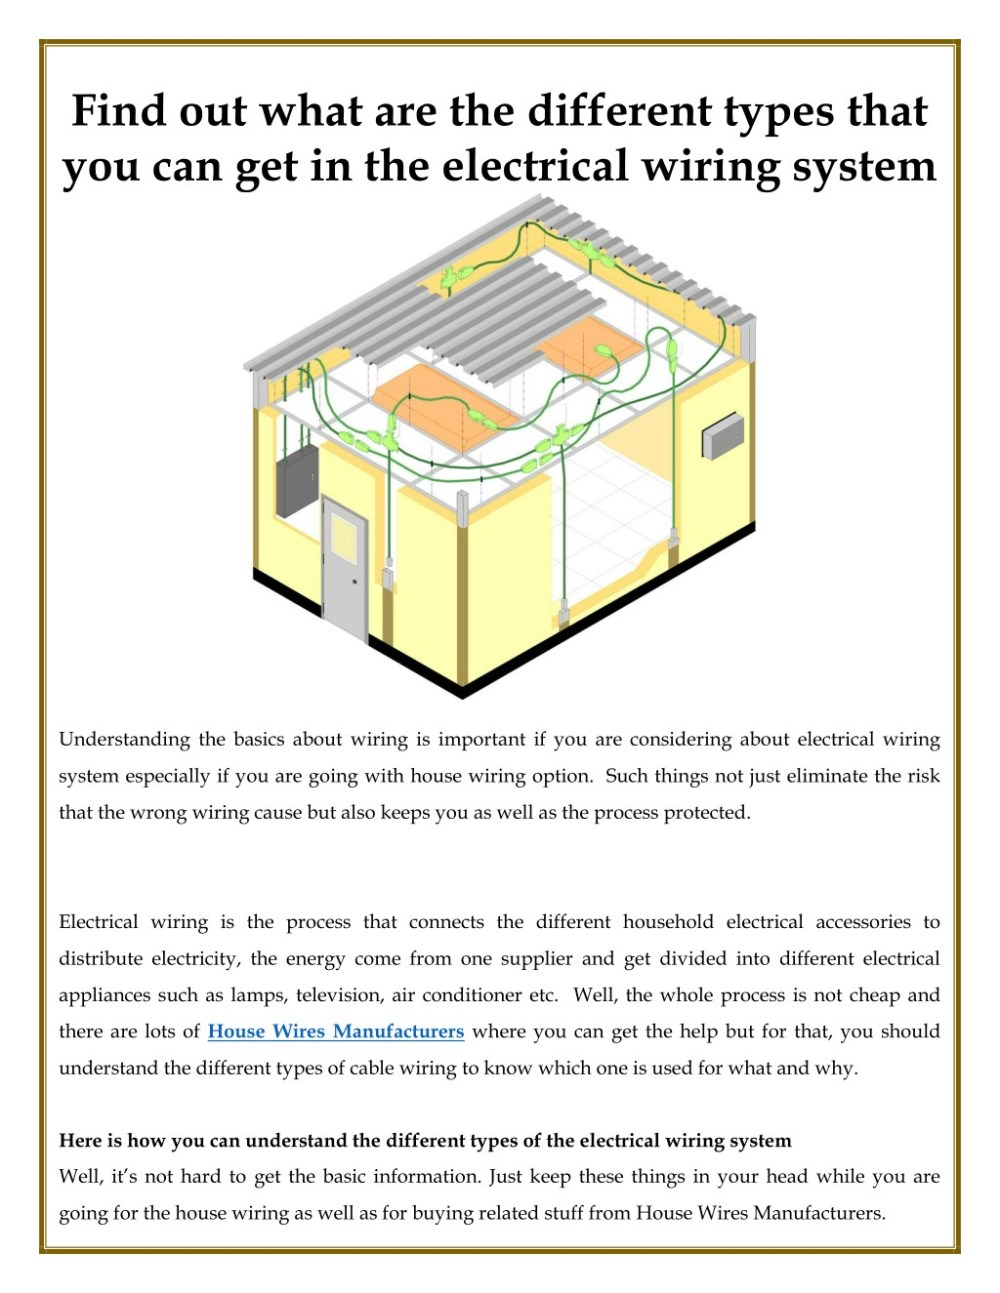 medium resolution of find out what are the different types that you can get in the electrical wiring